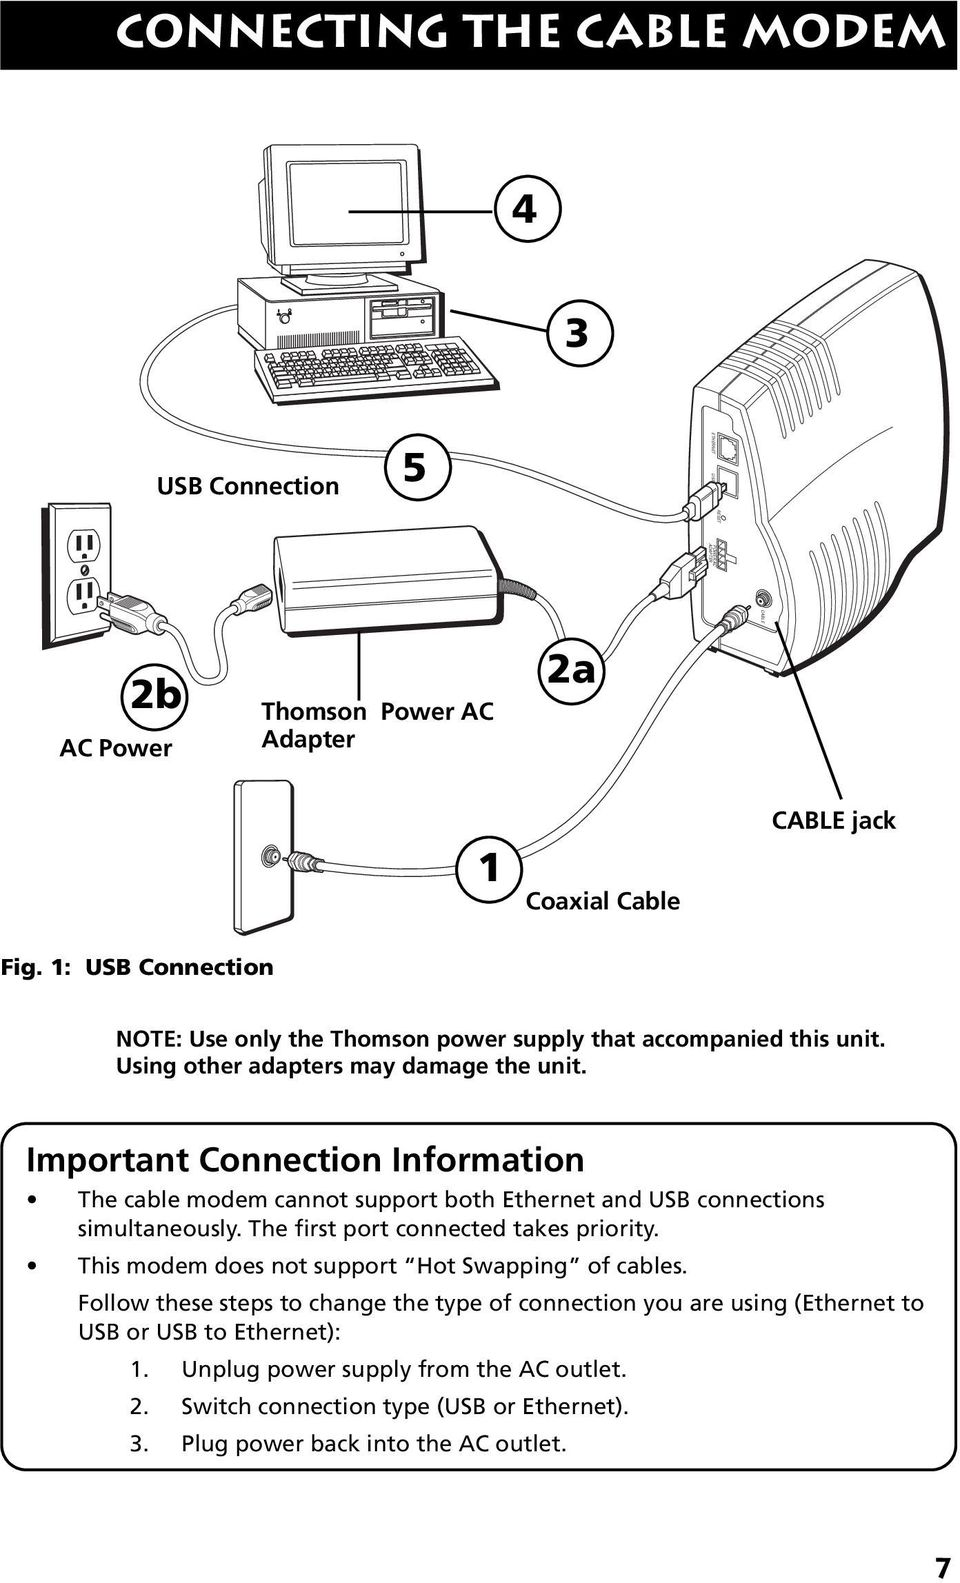 Important Connection Information The cable modem cannot support both Ethernet and USB connections simultaneously. The first port connected takes priority.